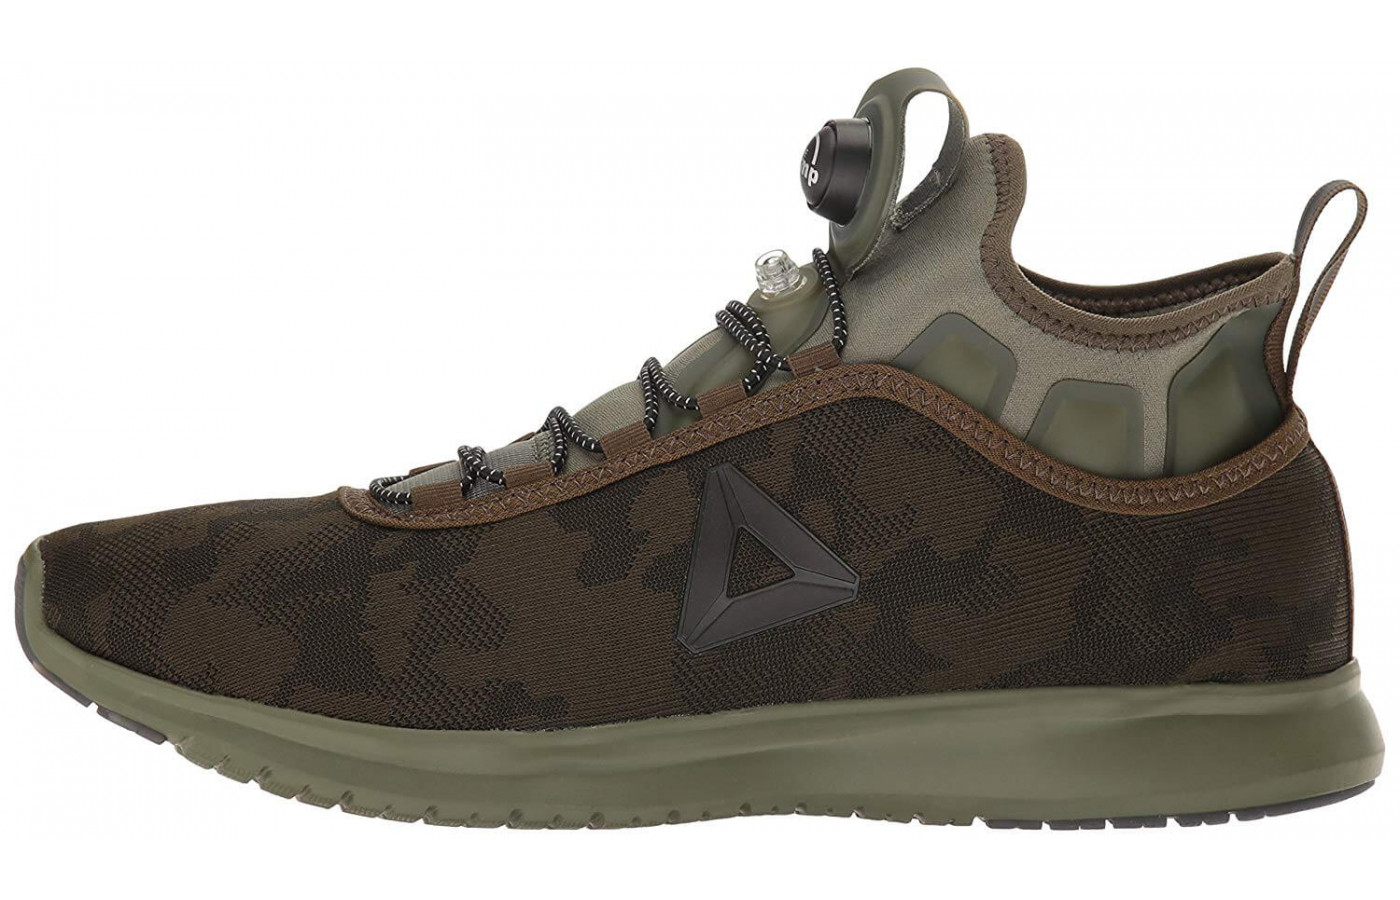 2e284632744f The Pump Plus Camo is only available in four neutral colorways  The shoe s  Pump Plus technology gives a more supportive and stable wear  A dual  density ...